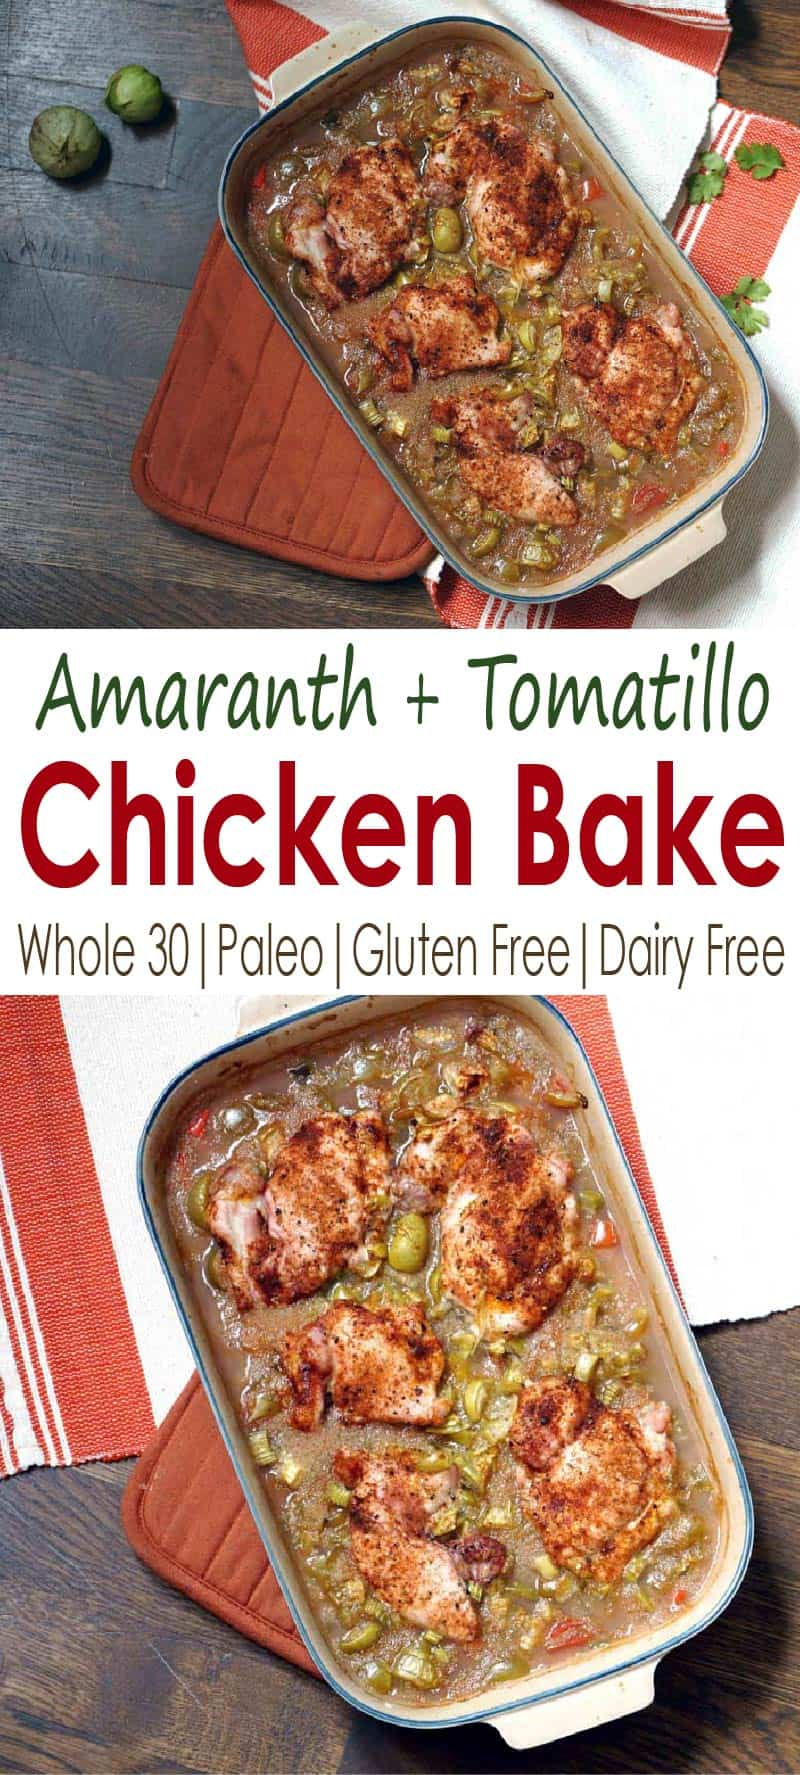 A foolproof recipe for weeknight dinners or to bring for a meal train, this amaranth and tomatillo chicken bake is loaded with protein, vitamins, and flavor. #whole30 #paleo #glutenfree #dairyfree #casserole